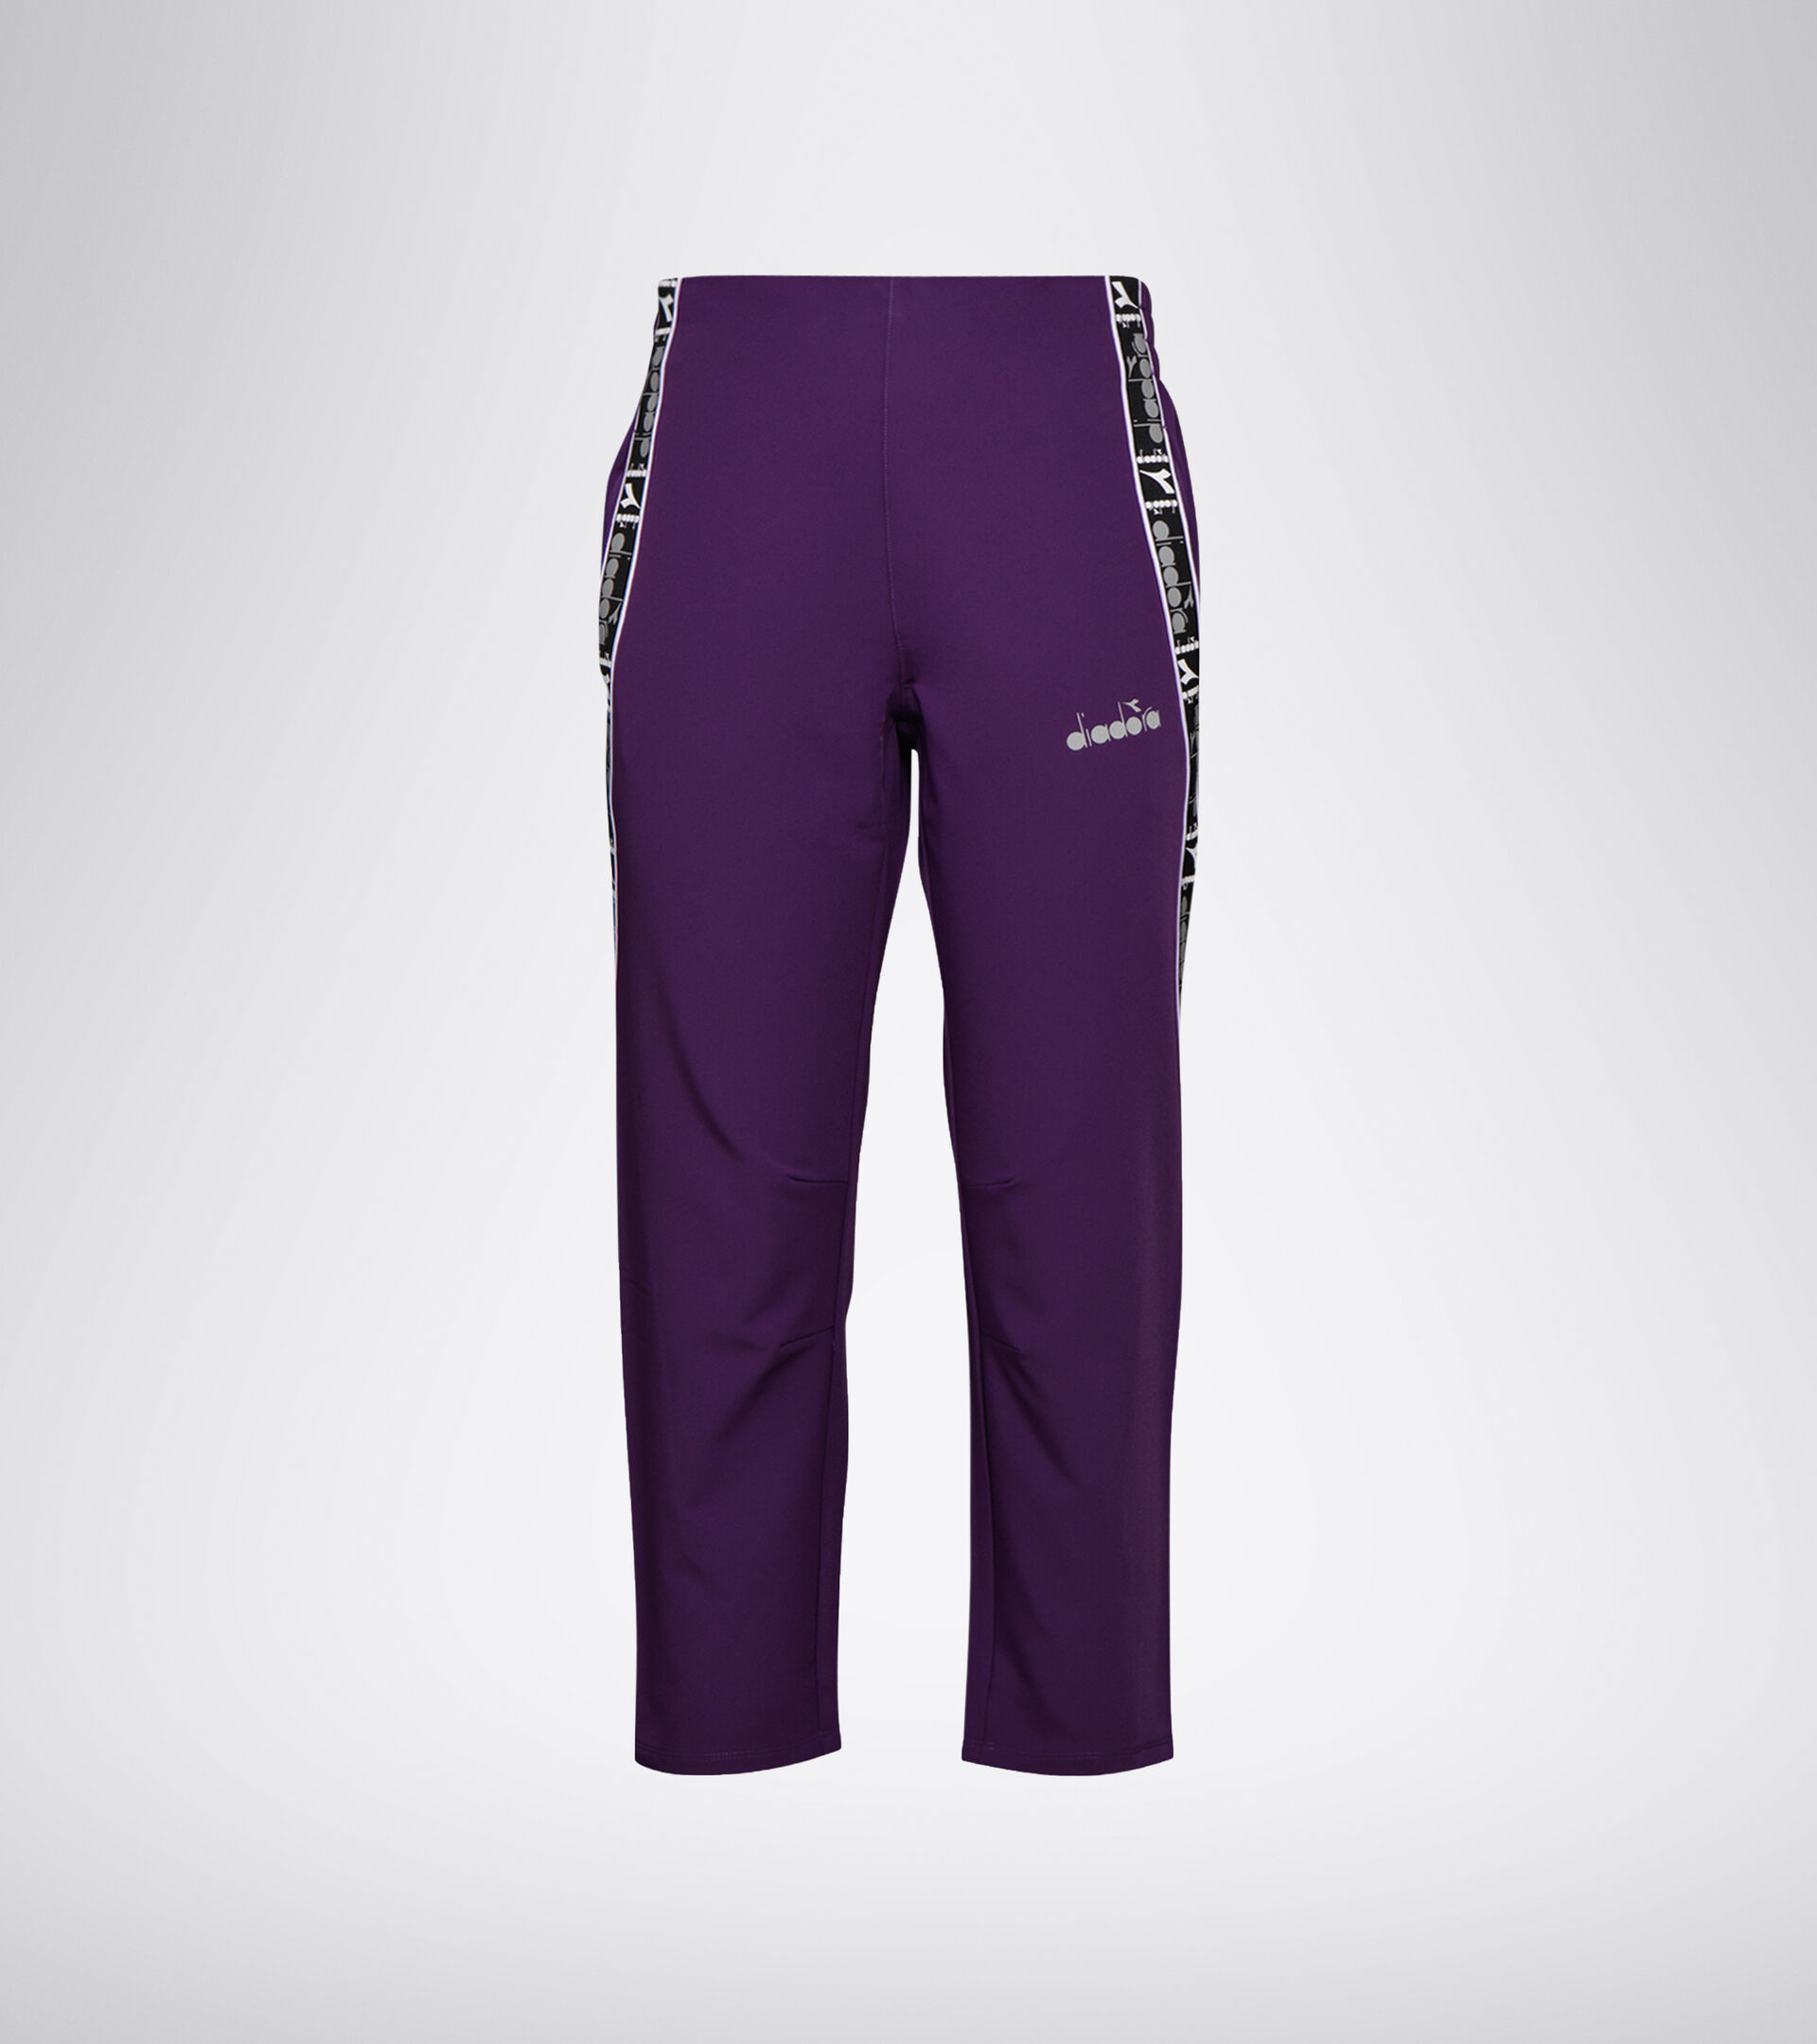 Running trousers - Women L. 7/8 RUNNING PANTS BE ONE MAJESTIC VIOLET - Diadora